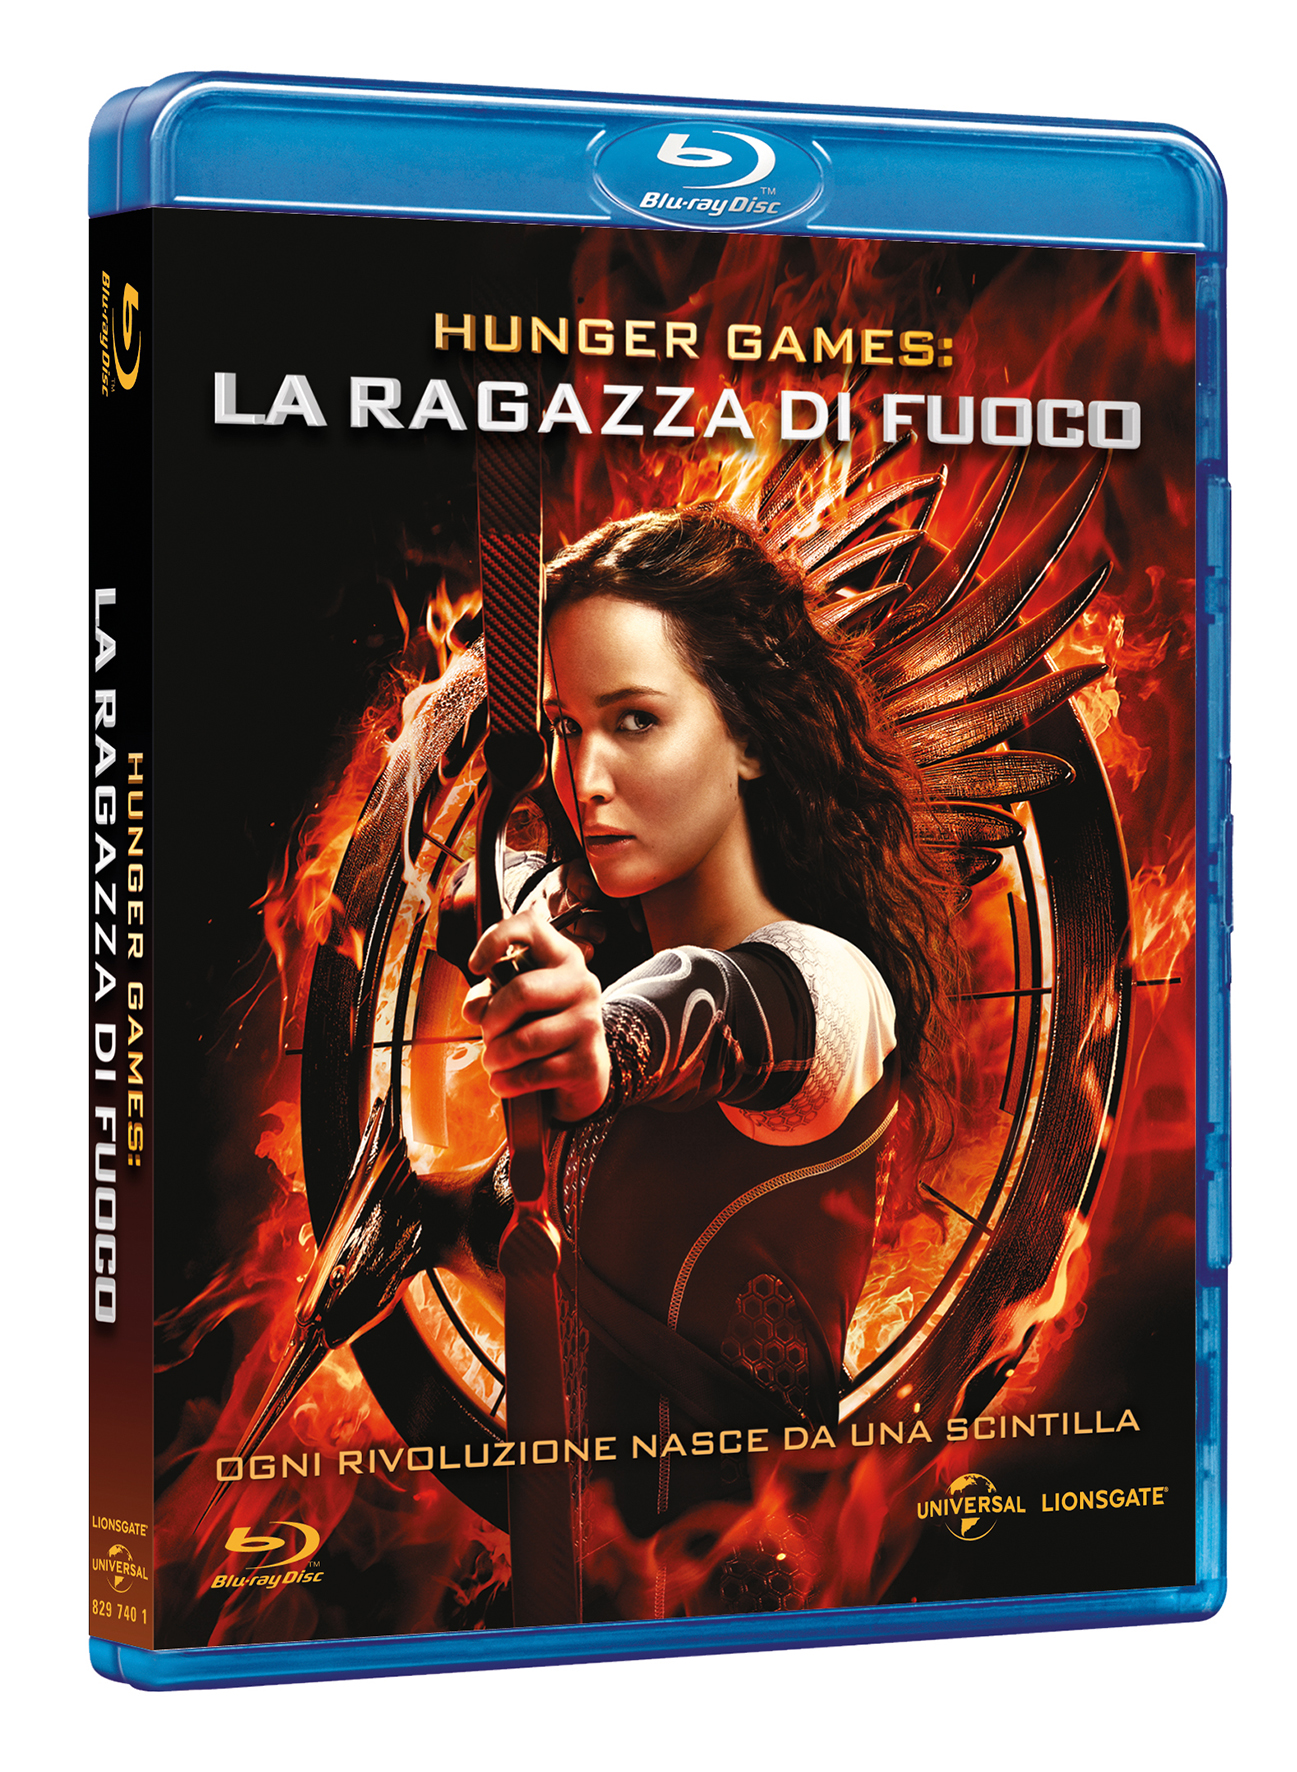 HUnger games la ragazza di fuoco blu-ray cover